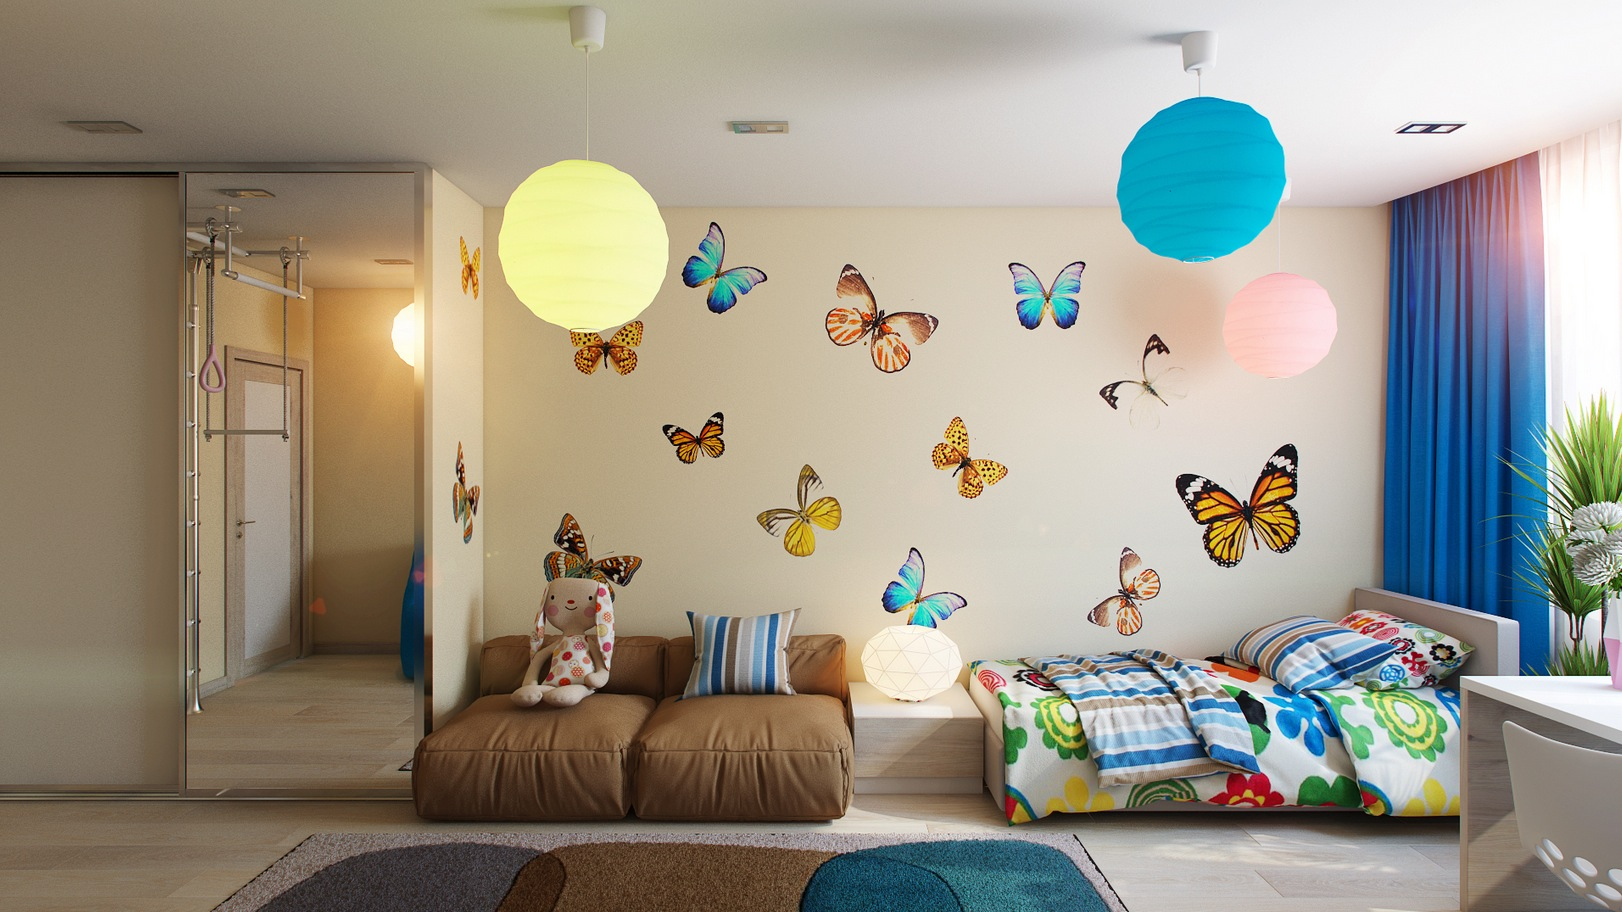 Casting color over kids rooms for Butterfly themed bedroom ideas